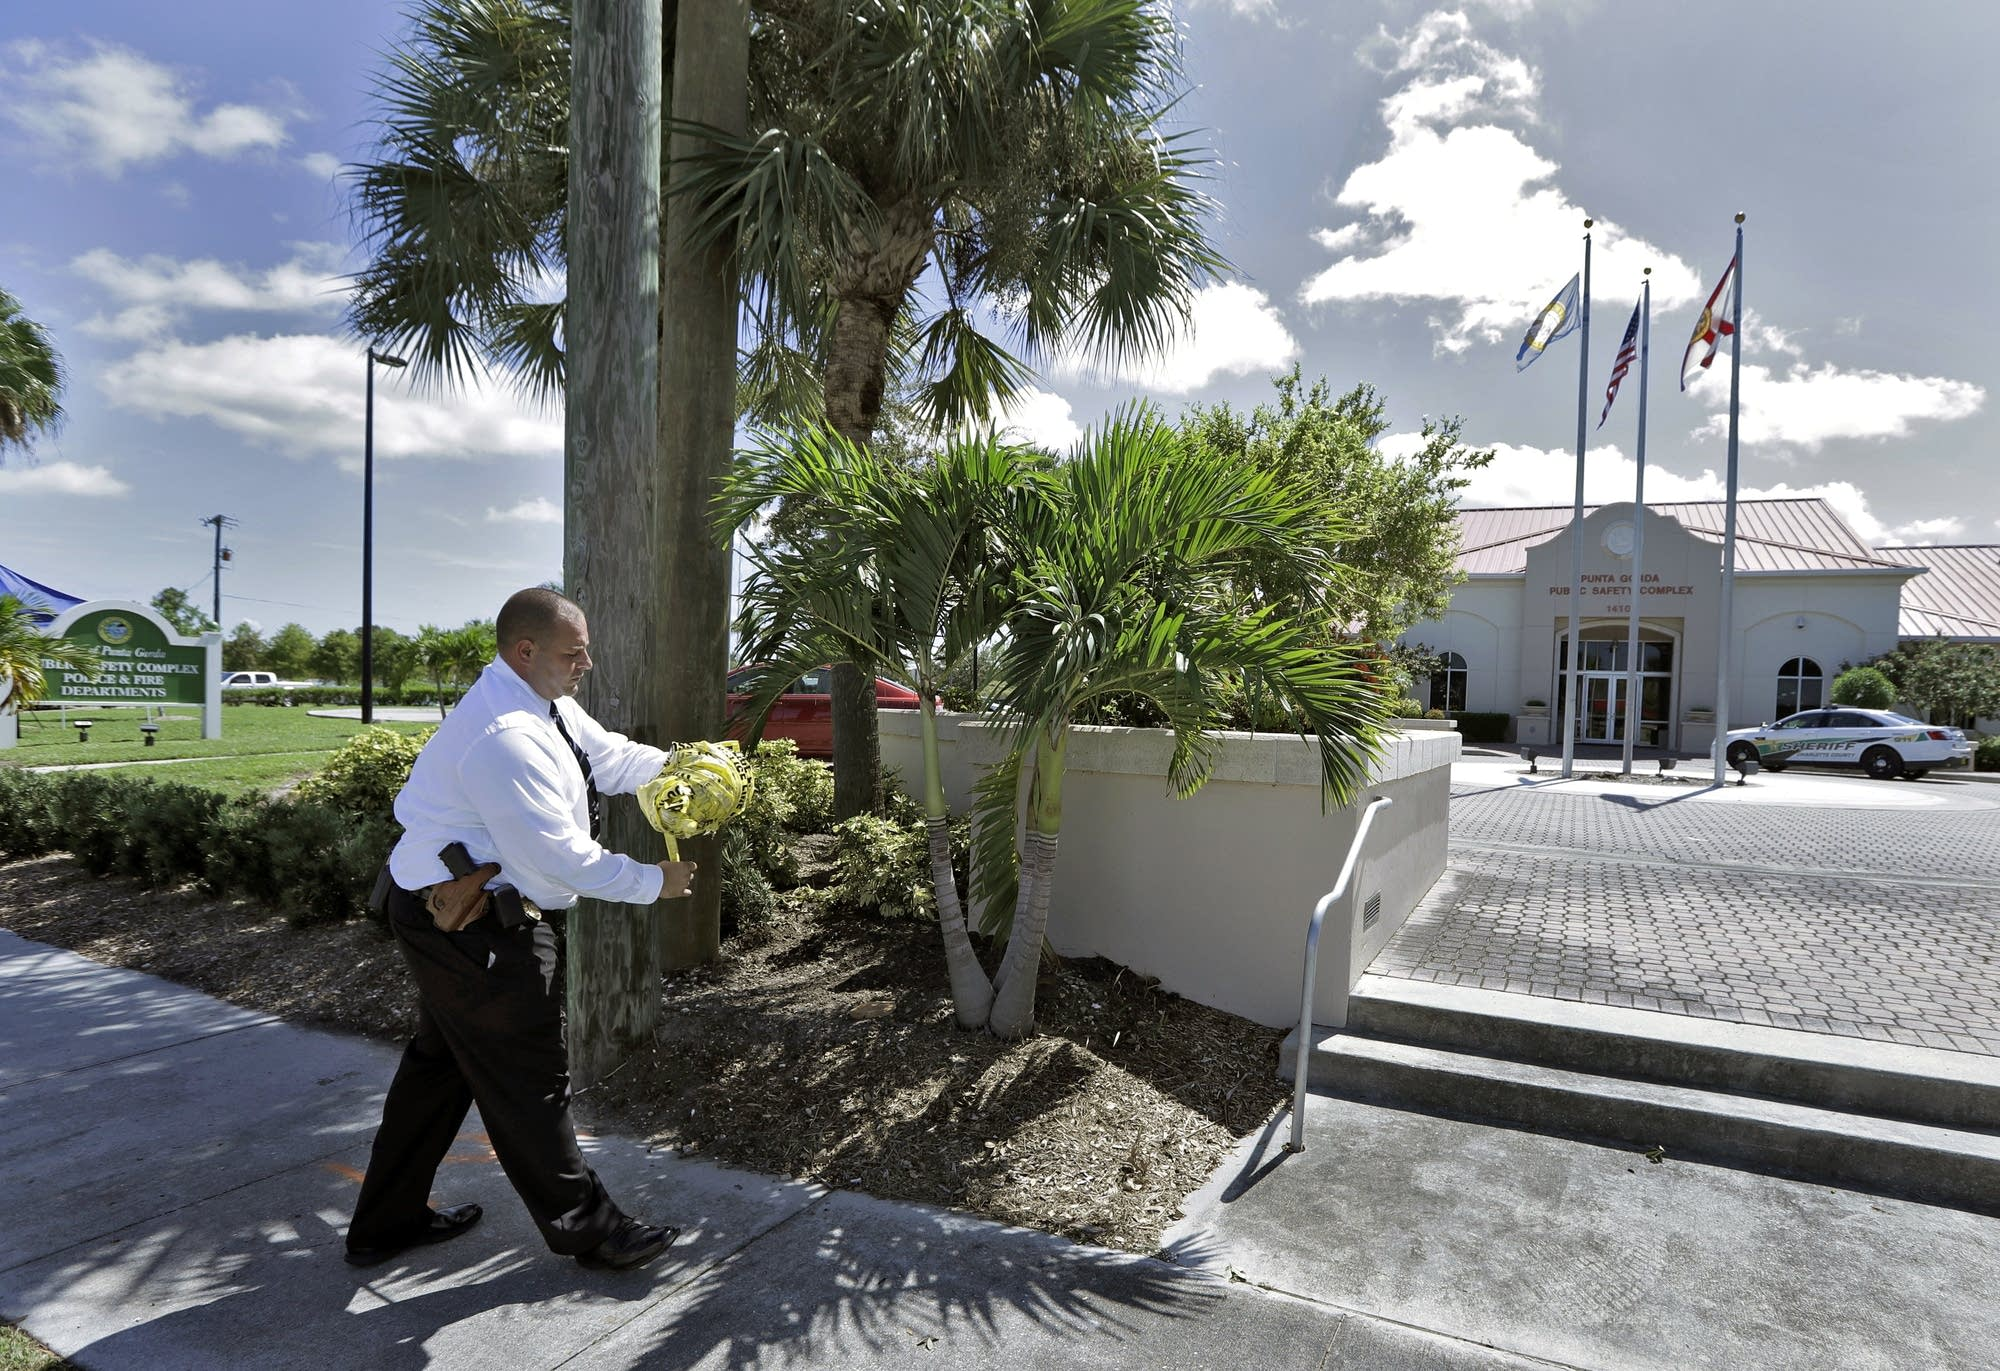 Florida police: Real ammo used by mistake in fatal training